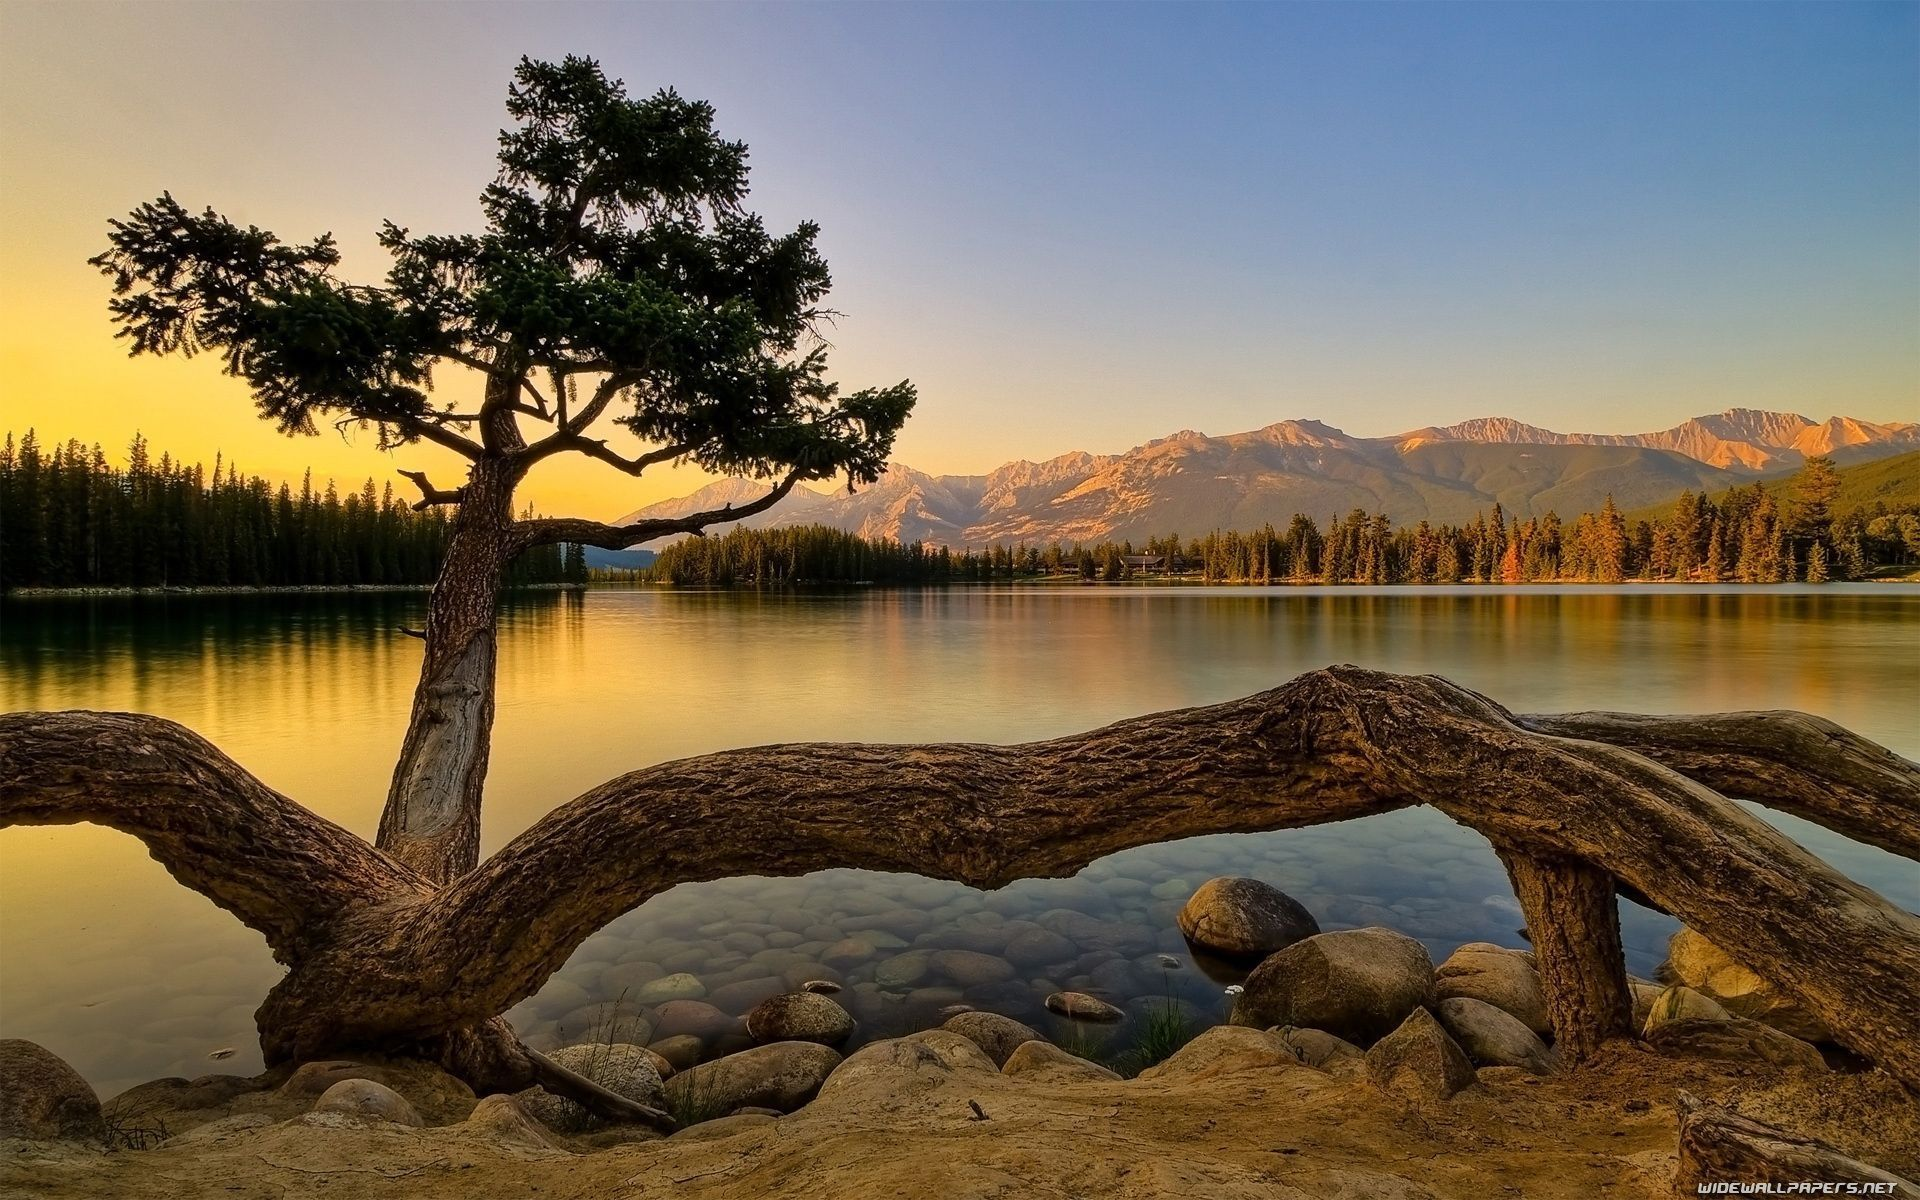 nature background hd download - nature background hd download HD ...